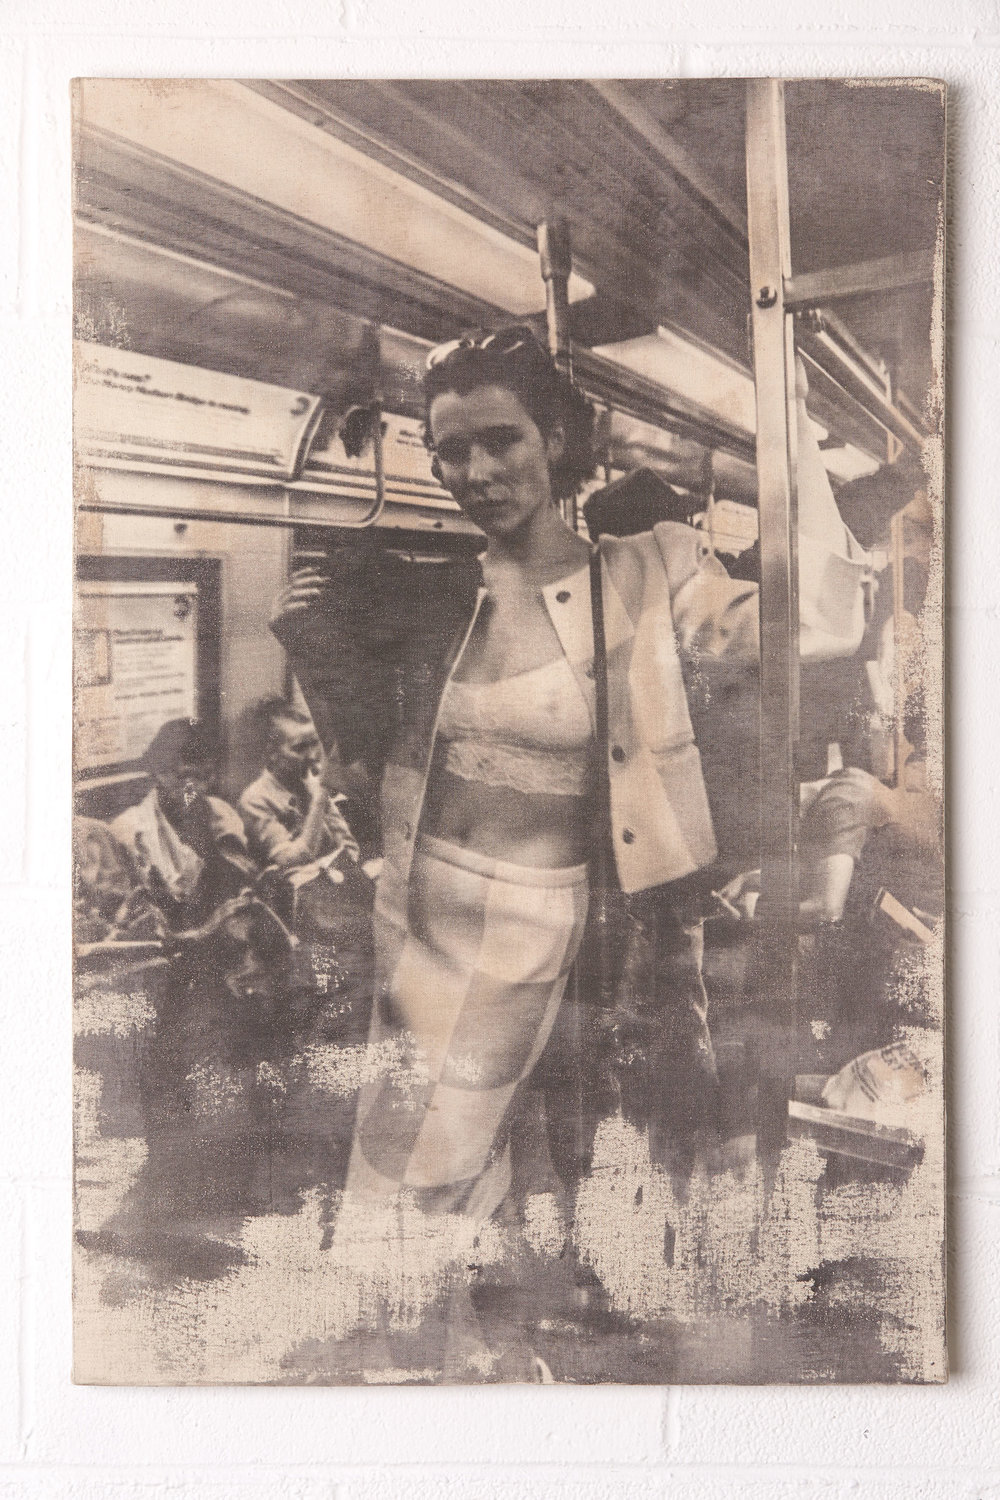 "L Train Vintage     24x36""    Single Edition Print (#1 of 1)   Liquid Emulsion Painted on Raw Canvas, Hand-Wrapped to 1/2"" Thick Foamcore Board.  Foamcore has a slight convex warping about 3/8"" from outside corners to inside   Ingredients:  Photo (One Grand Day, One of my Favorite People (Marla Covert!), One Subway Ride) Print (Canvas, Foamcore, Liquid Light, Ethenol, Proprietary Chemical Blend & Process)"